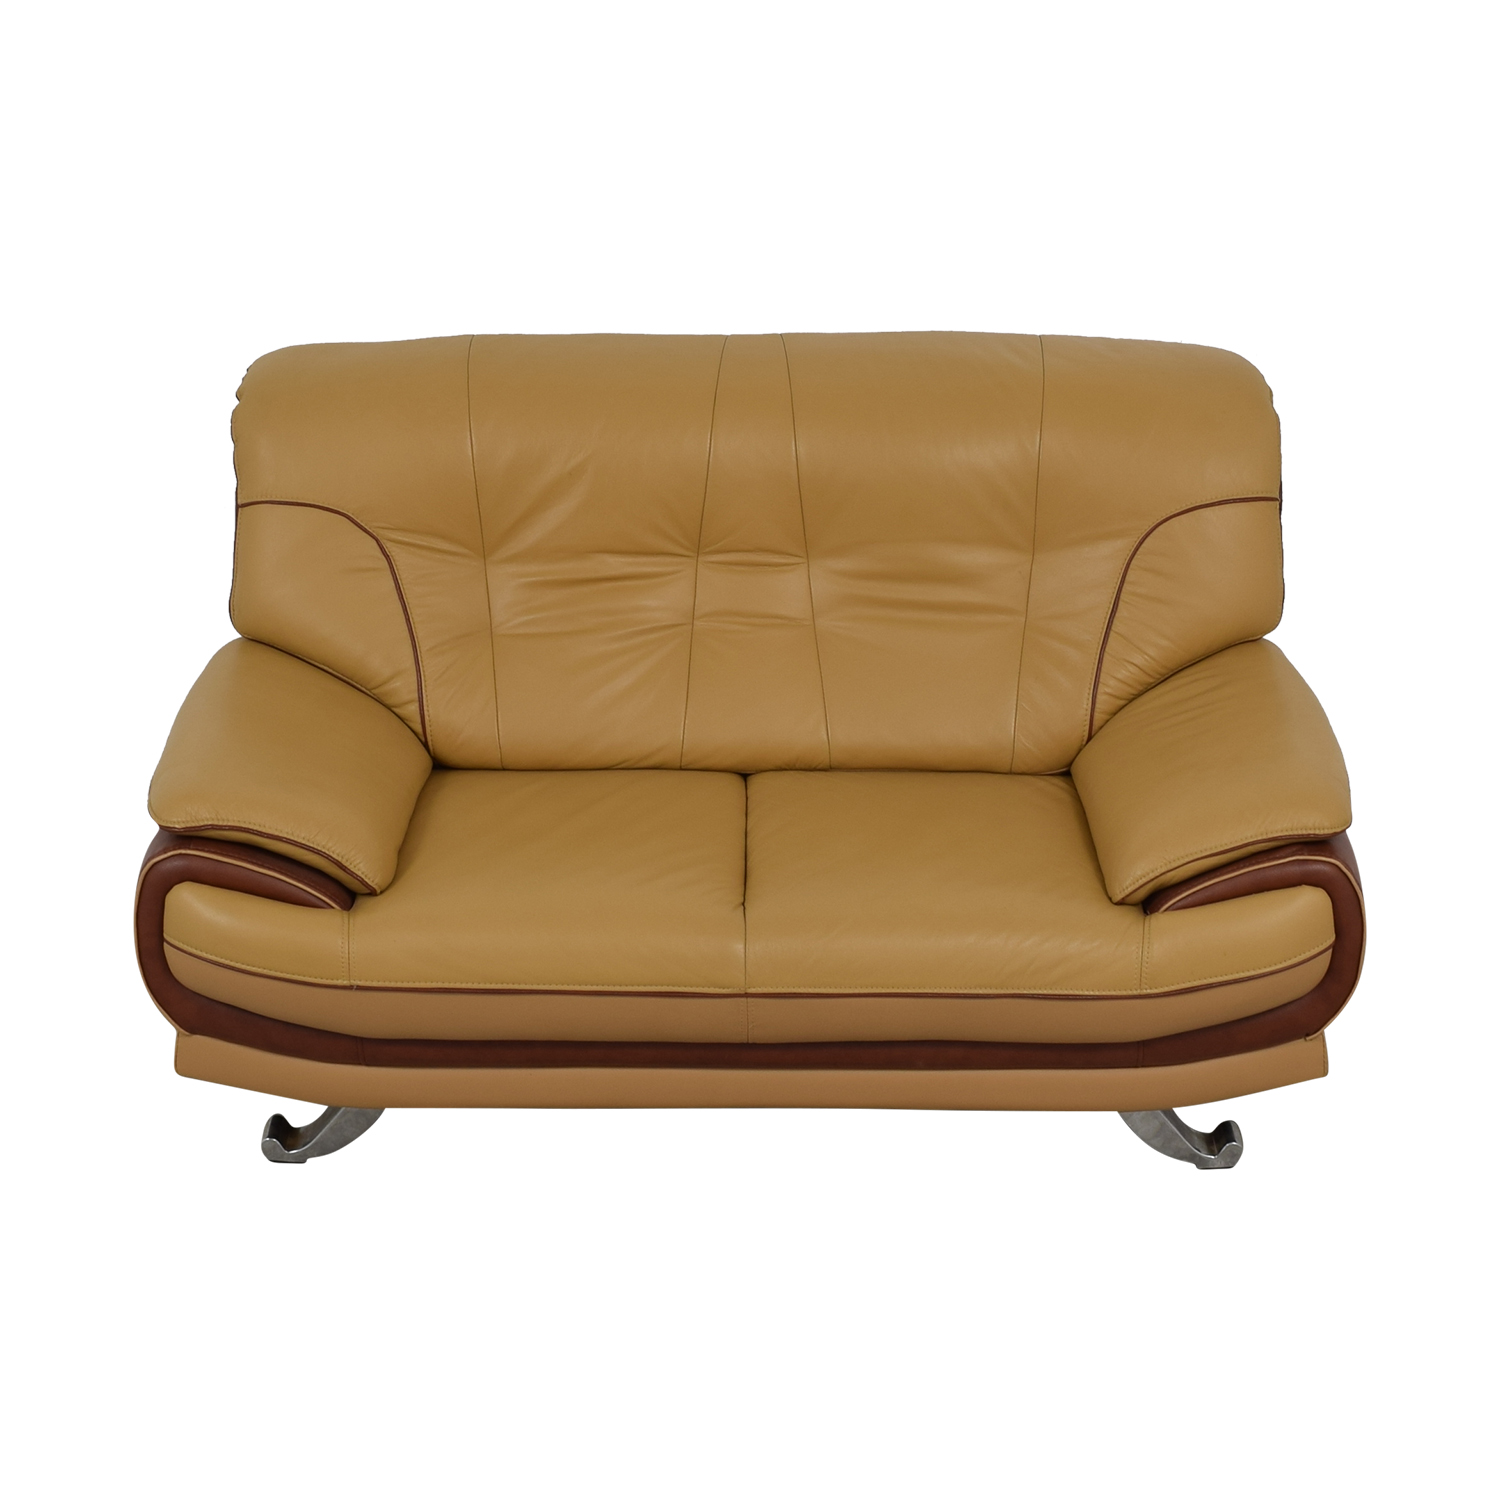 AE Furniture AE Furniture Brown and Beige Loveseat brown and beige